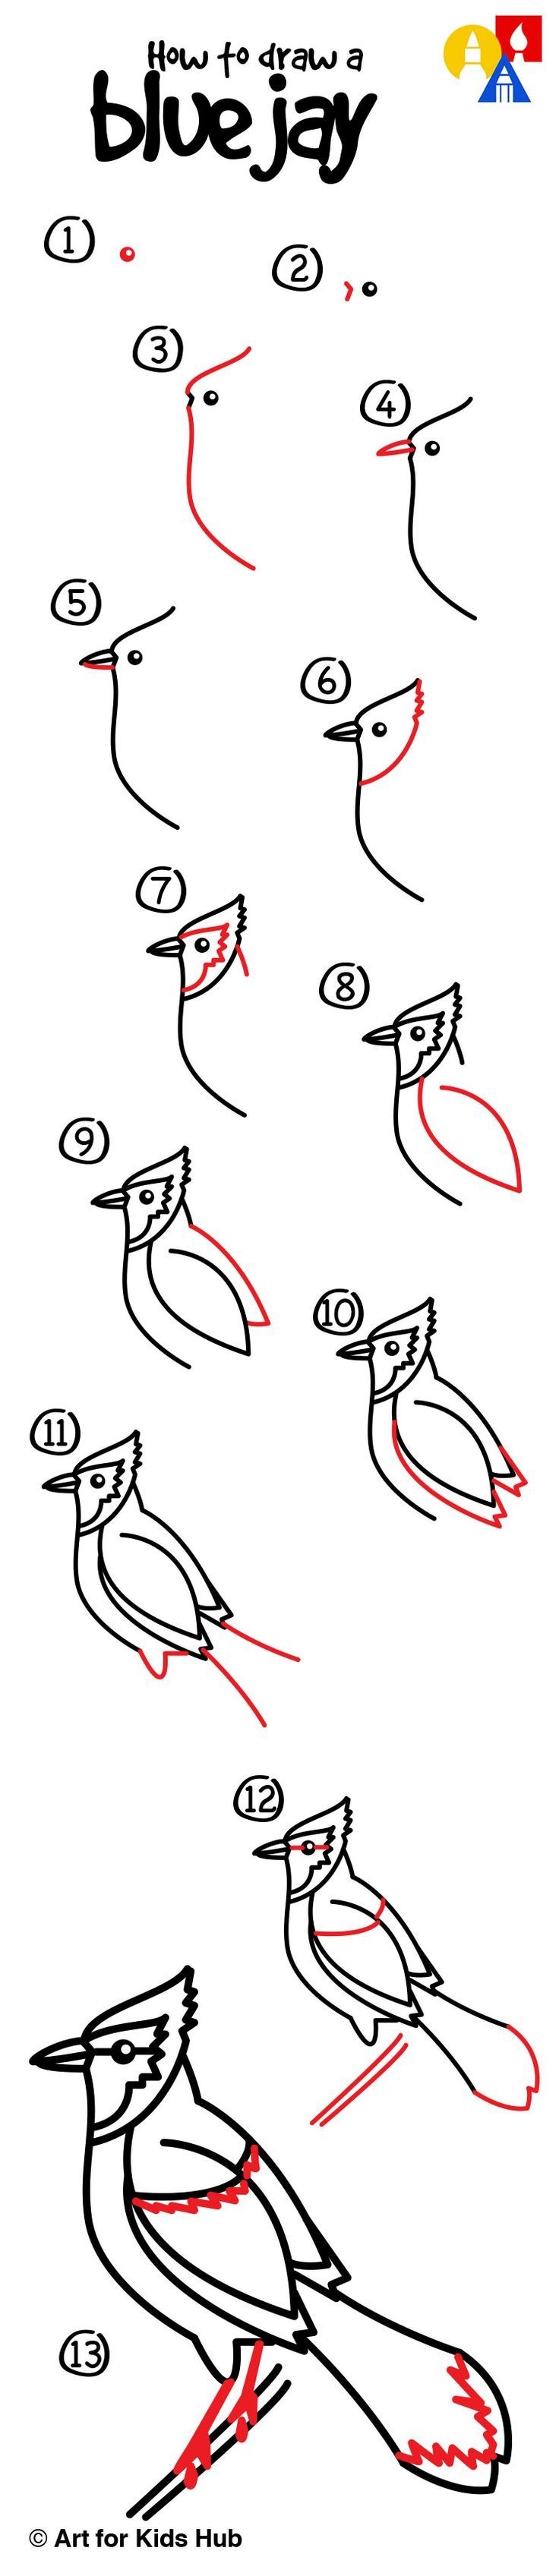 How To Draw A Hummingbird  How To Draw A Blue Jay For Kids!: